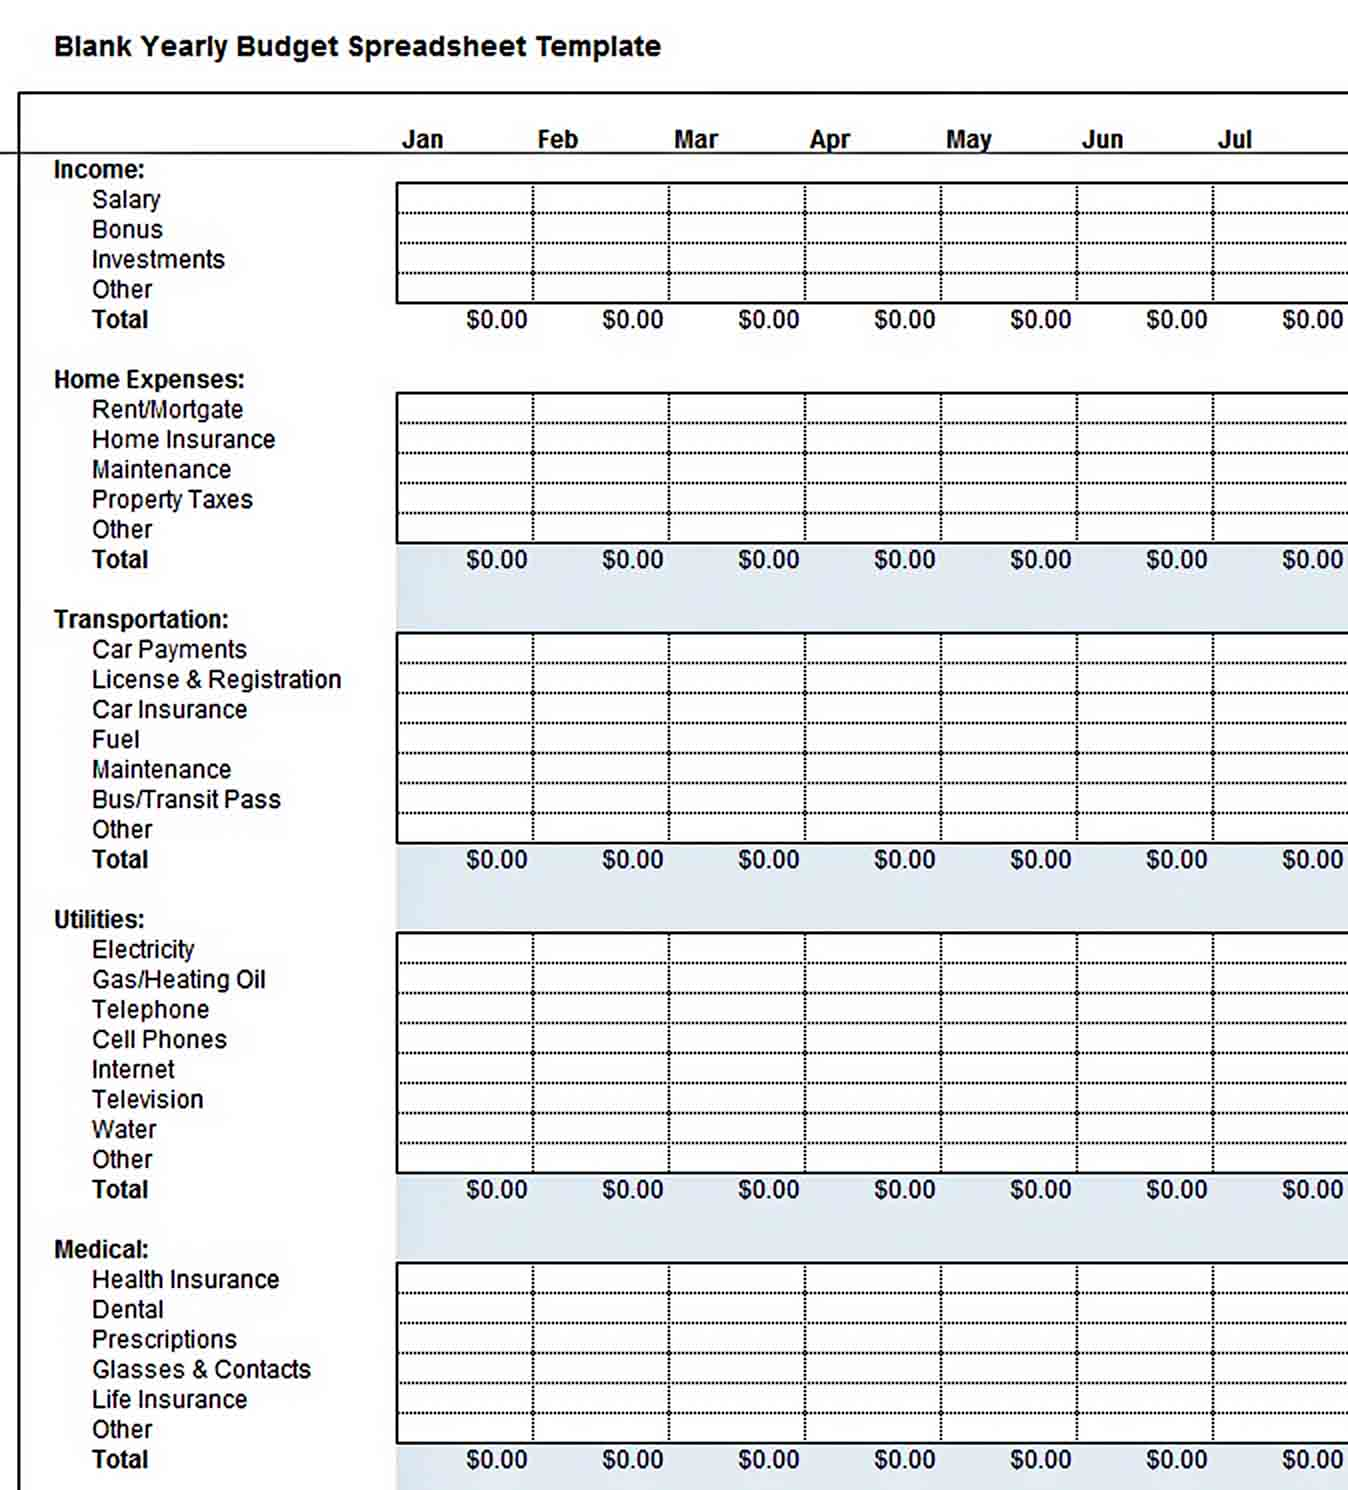 blank yearly budget spreadsheet template sample